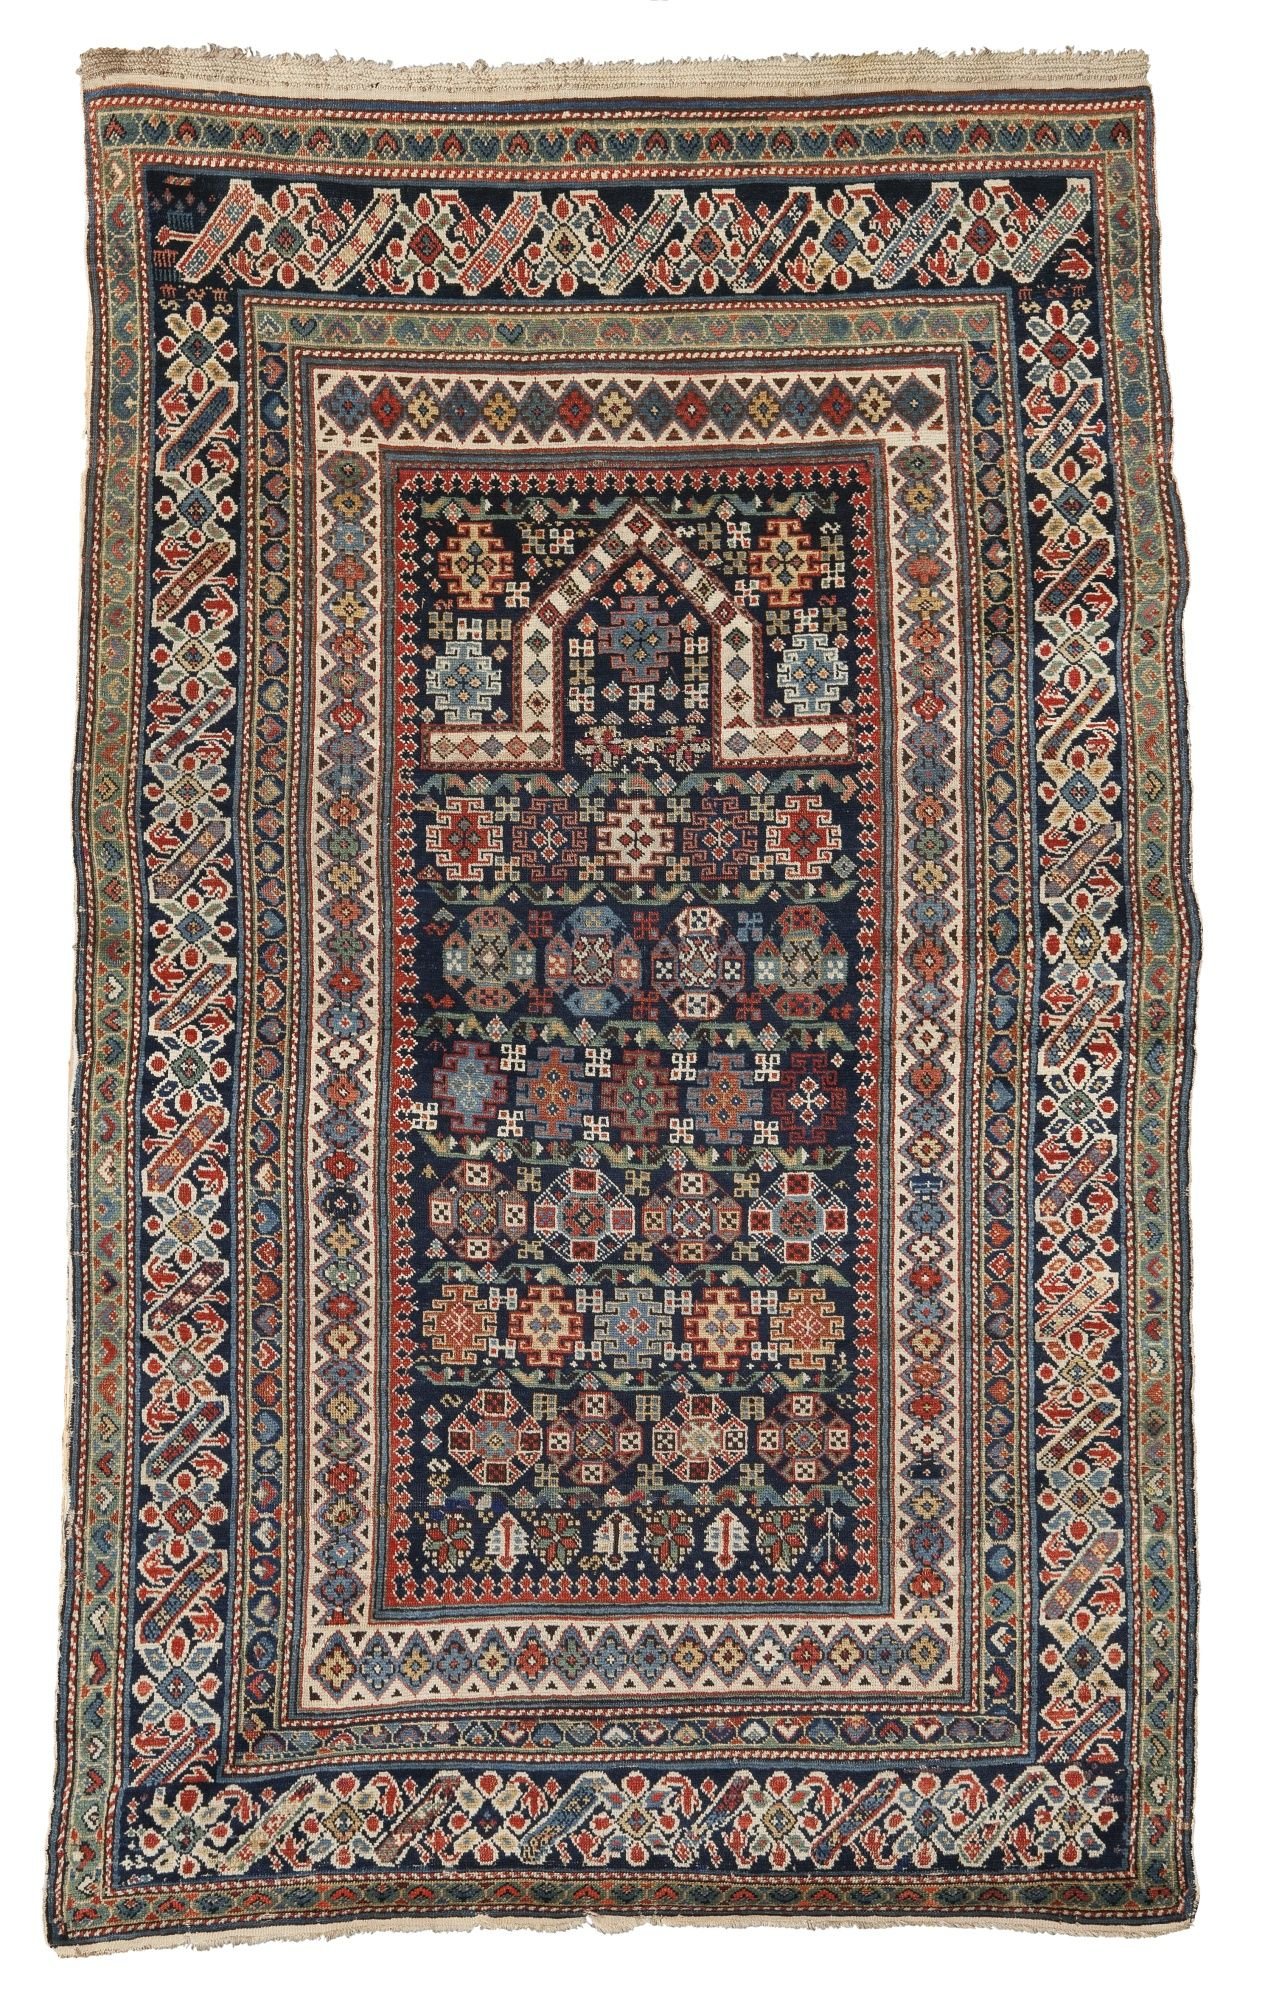 rug sotheby's n09104lot73mdcen Tappeti, Preghiera e